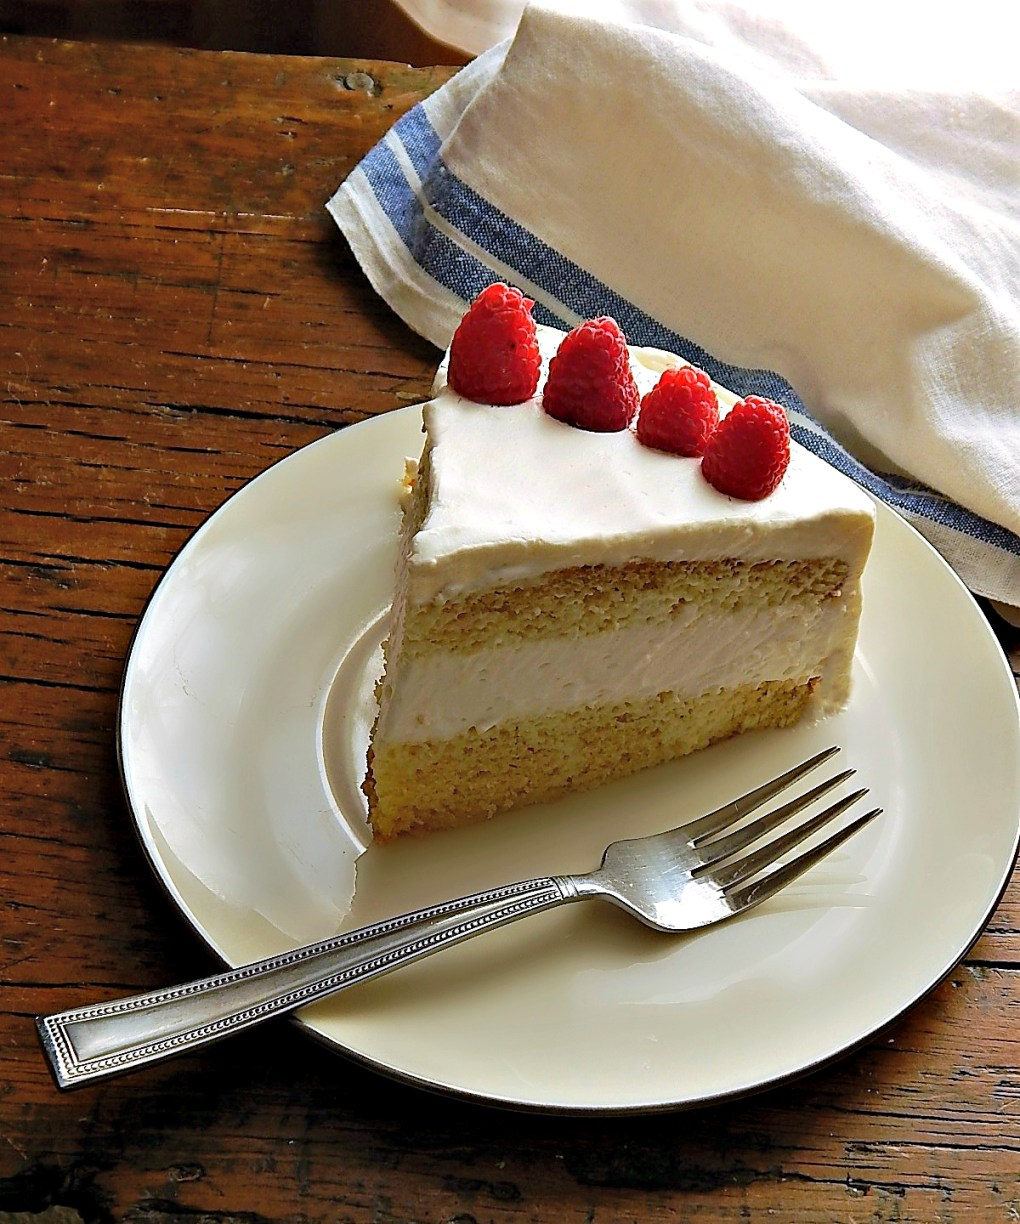 Caffe Lattes Tres Leches Cake,